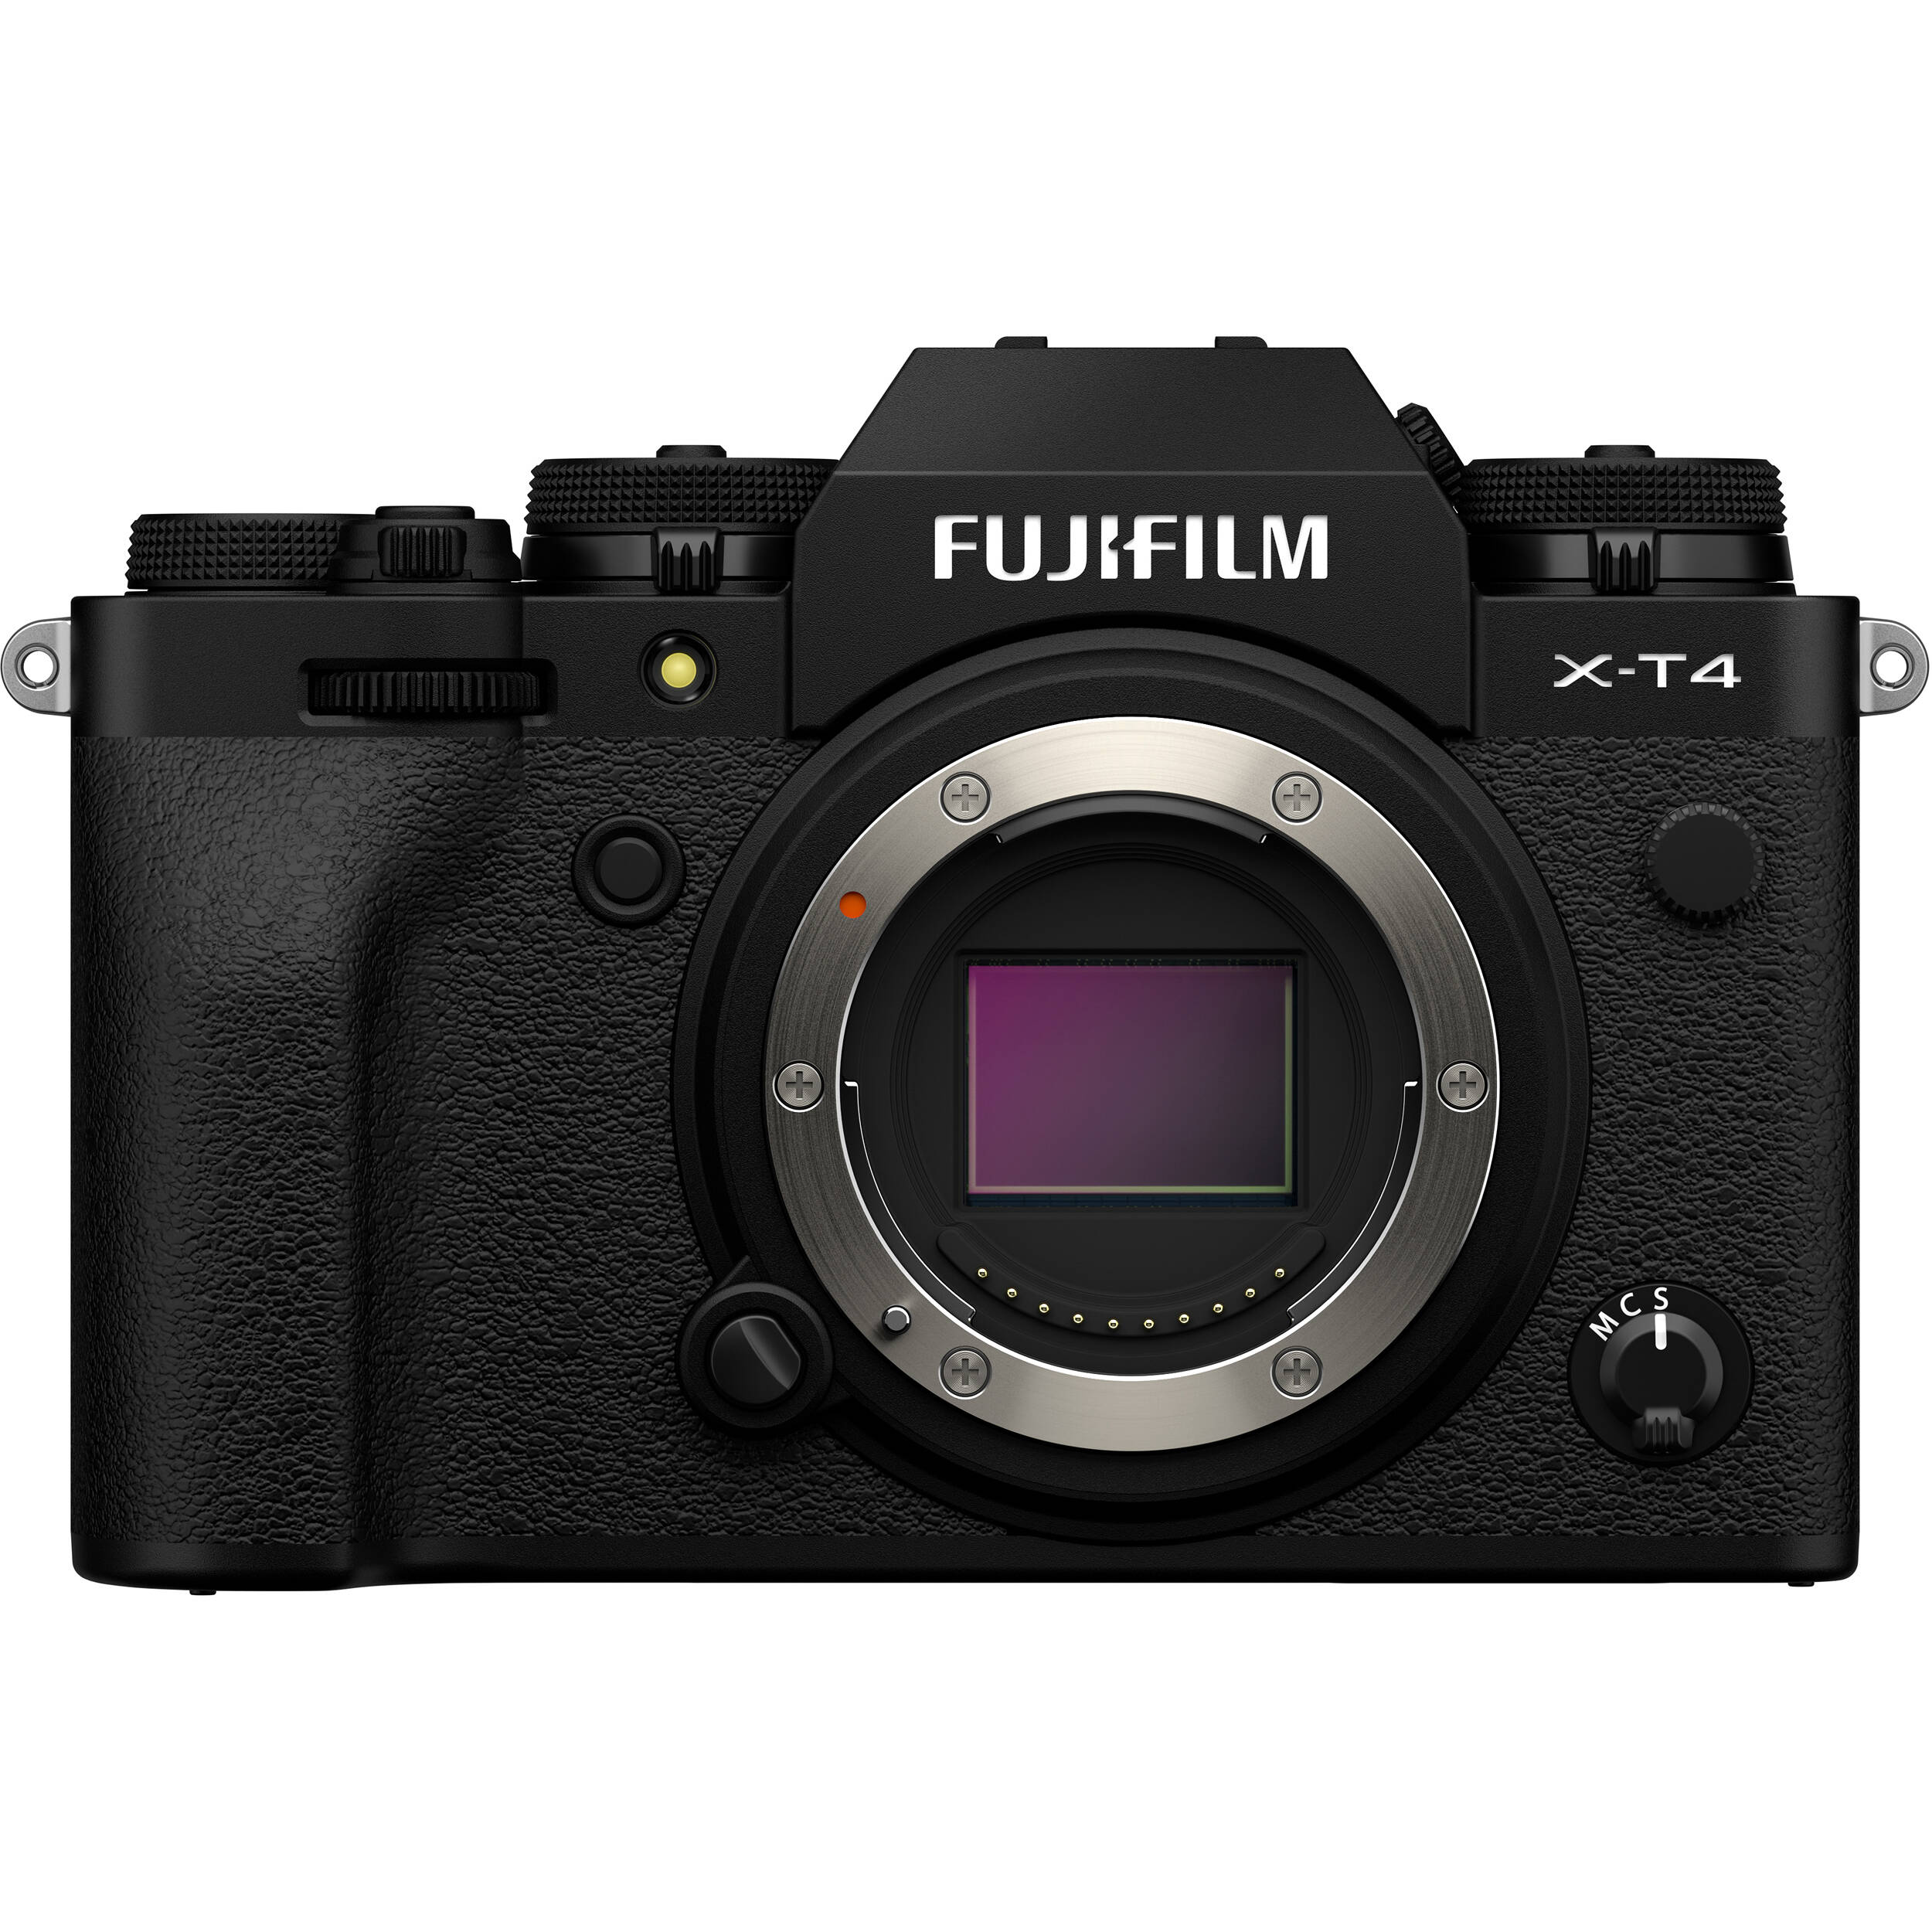 FUJIFILM X-T4 Mirrorless Digital Camera (XT4 Camera Body, Black) B&H